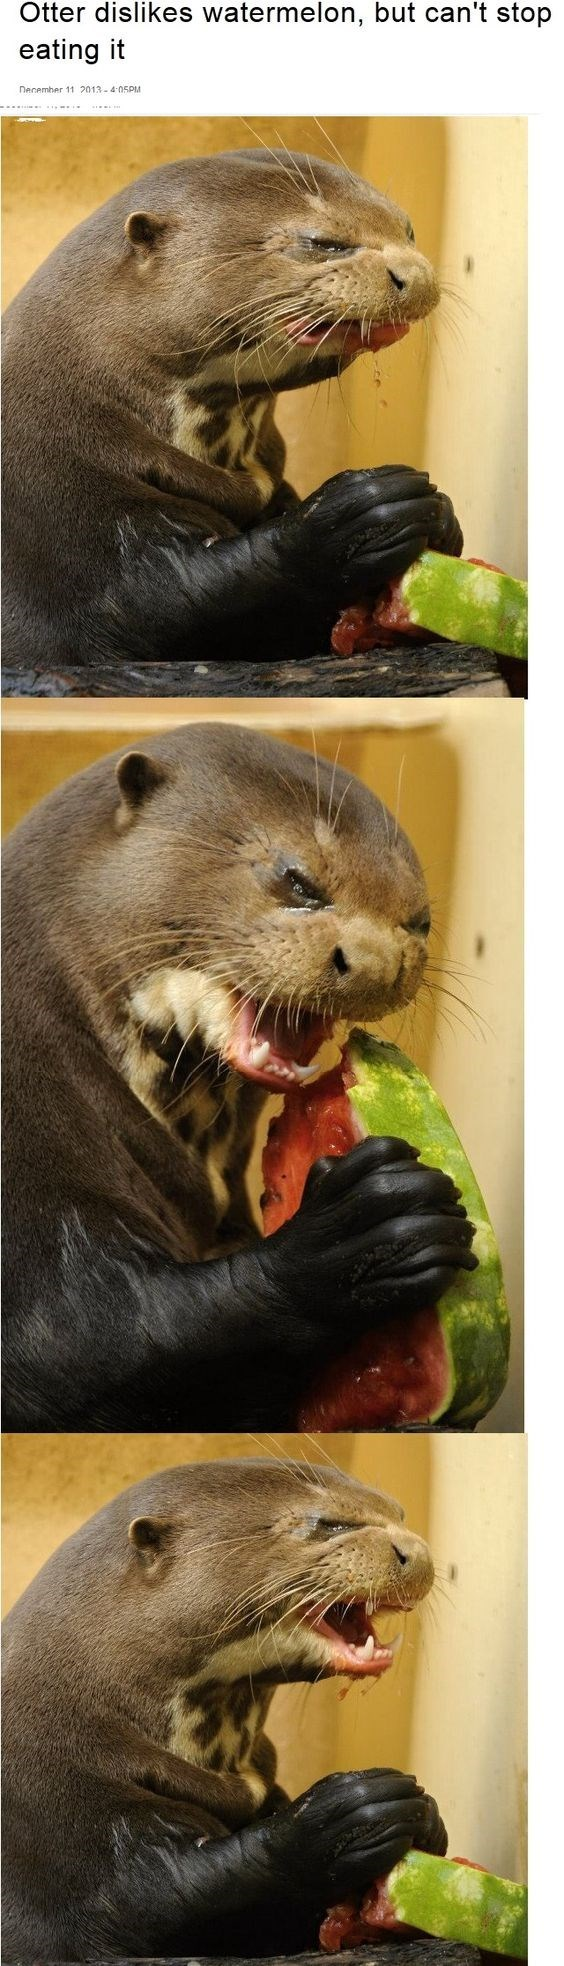 Mammal - Otter dislikes watermelon, but can't stop eating it necemher 11 2013-4 05PM